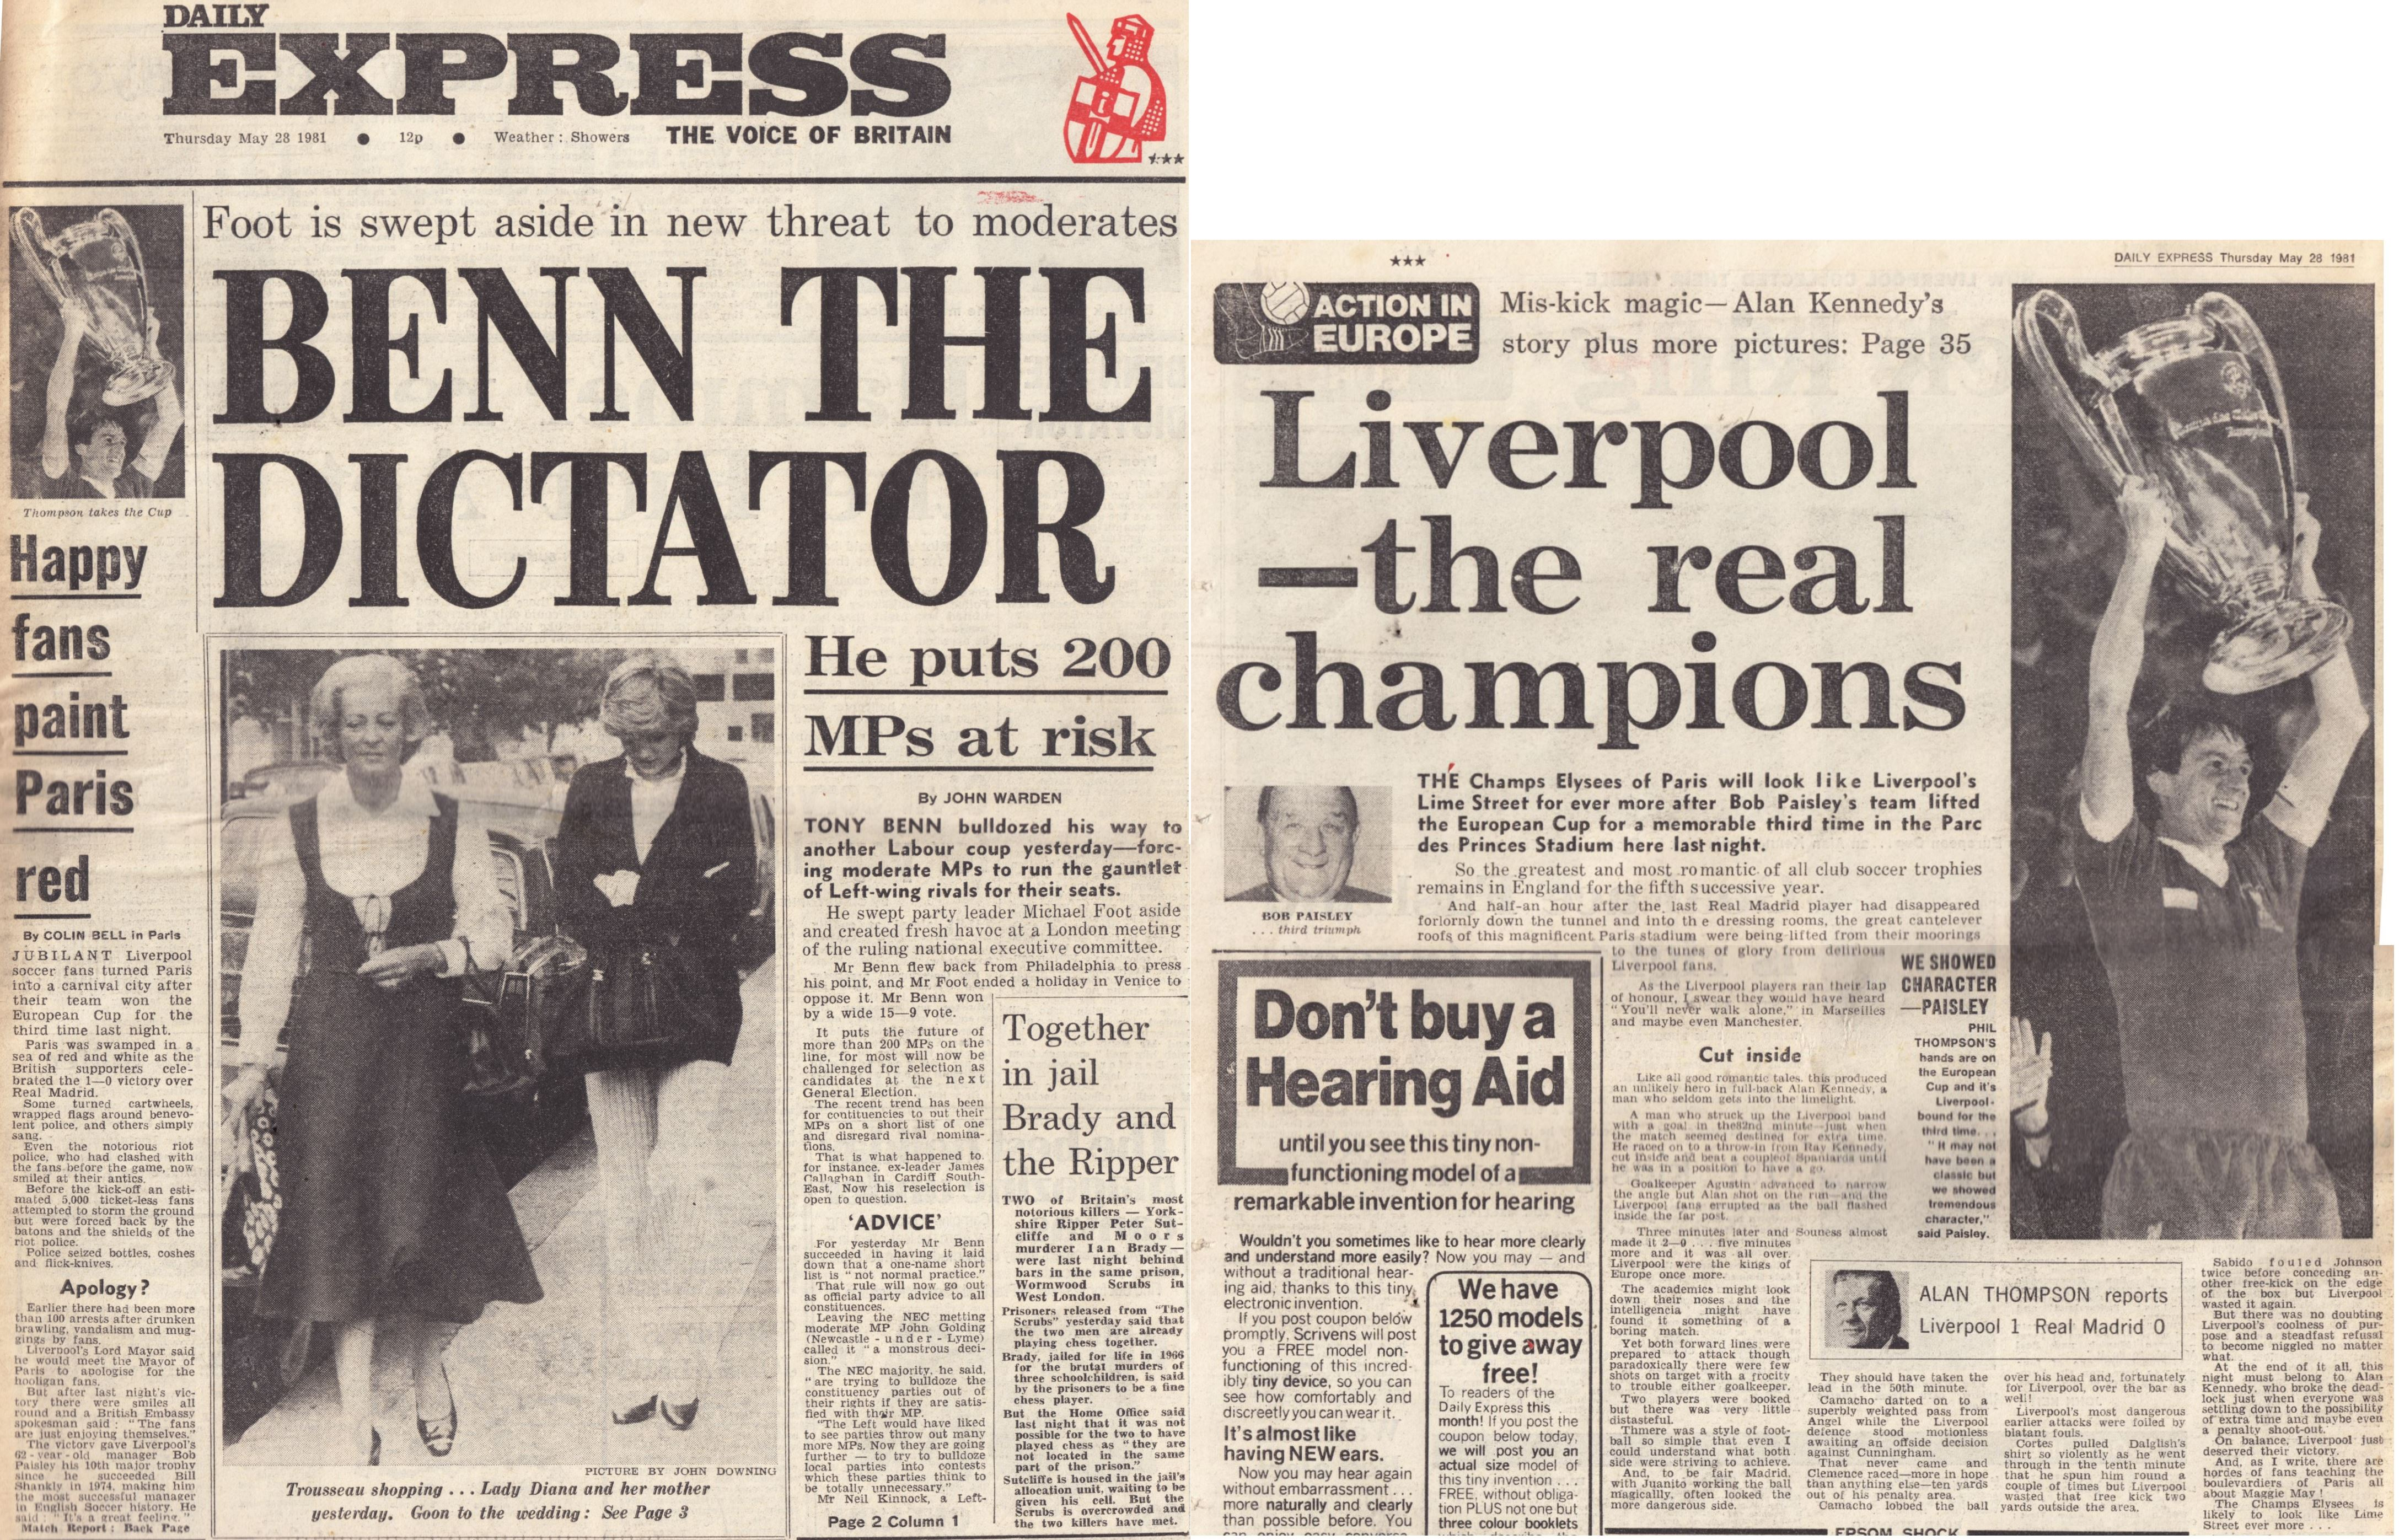 Liverpool the real champions! - 1981